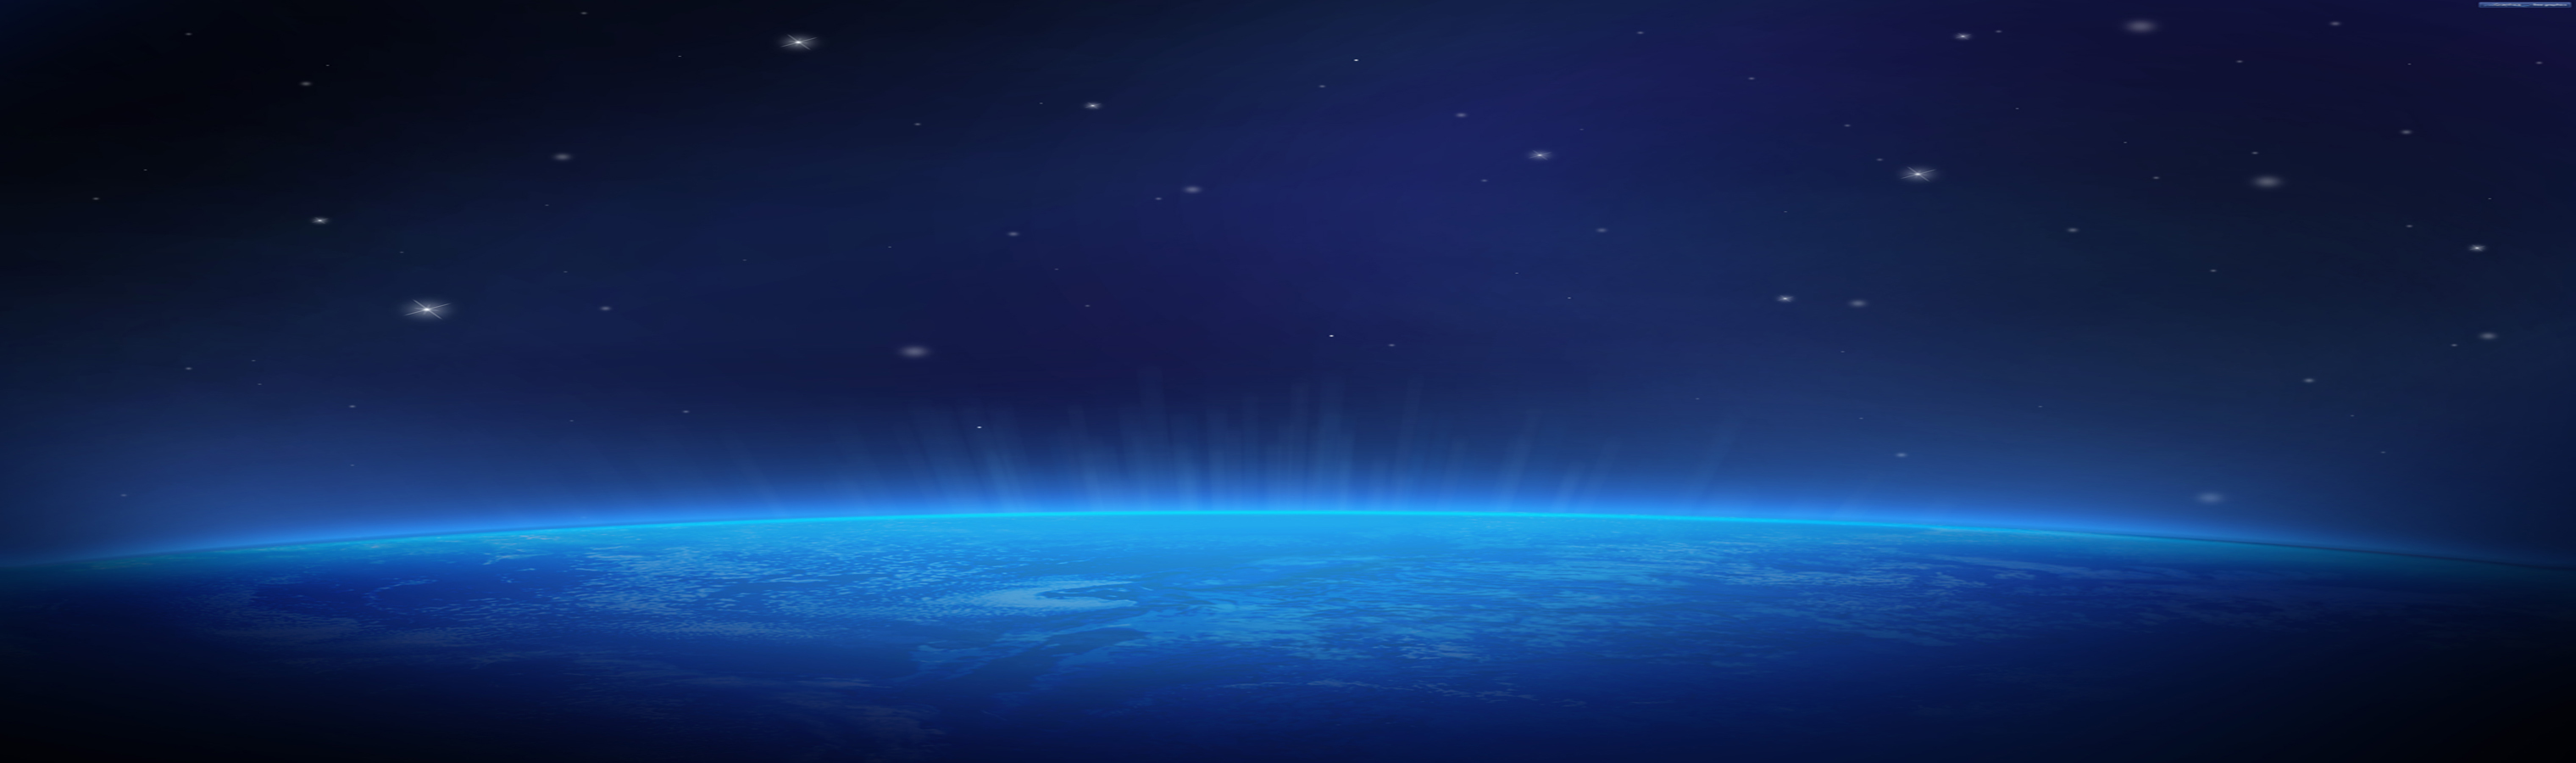 planet Earth in Space HD Wallpaper